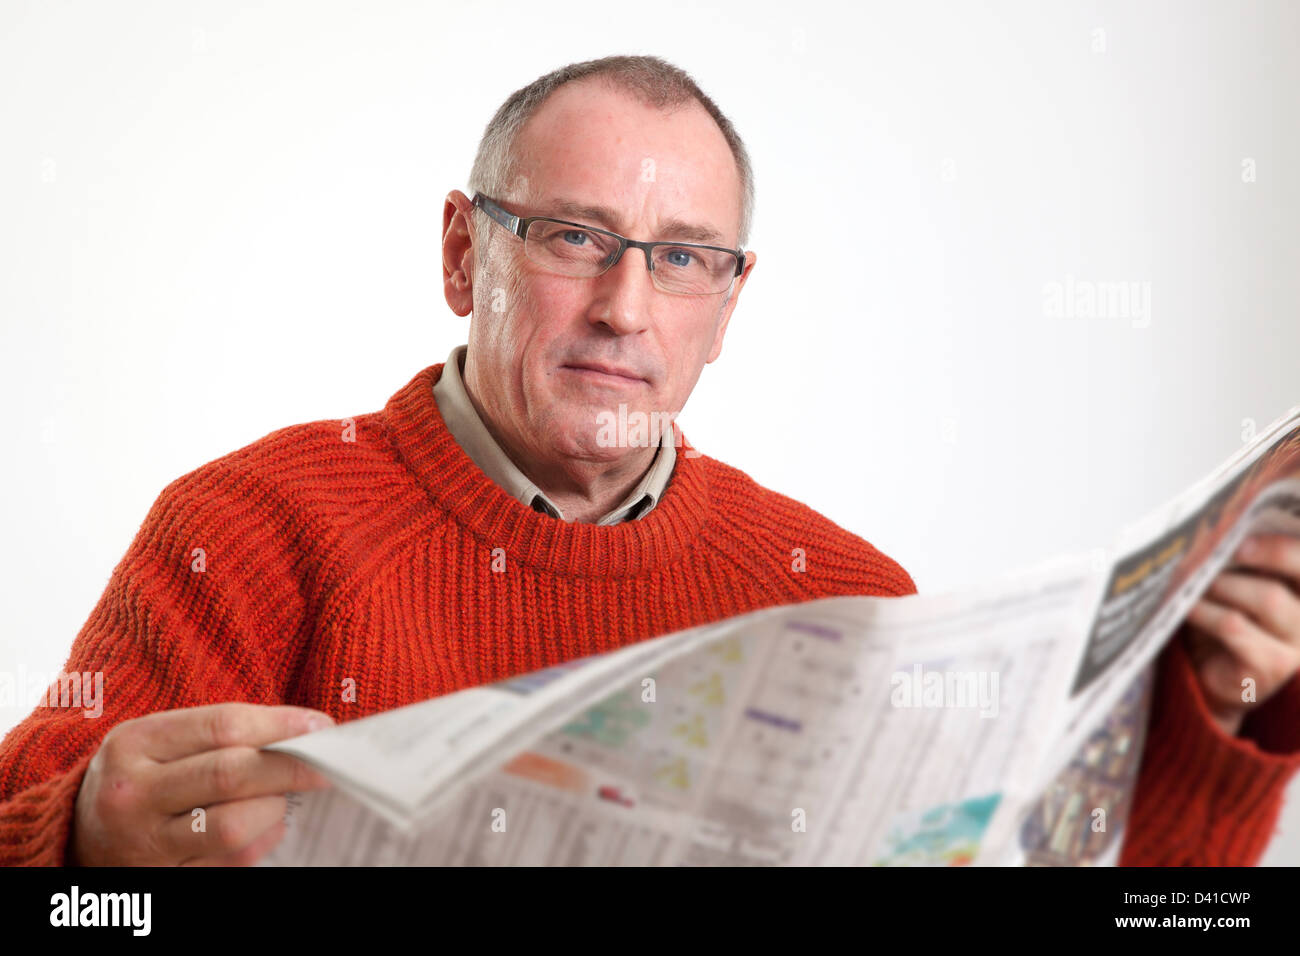 Mature man in 50s wearing sweater, reading a broadsheet newspaper, looking to camera serious. - Stock Image